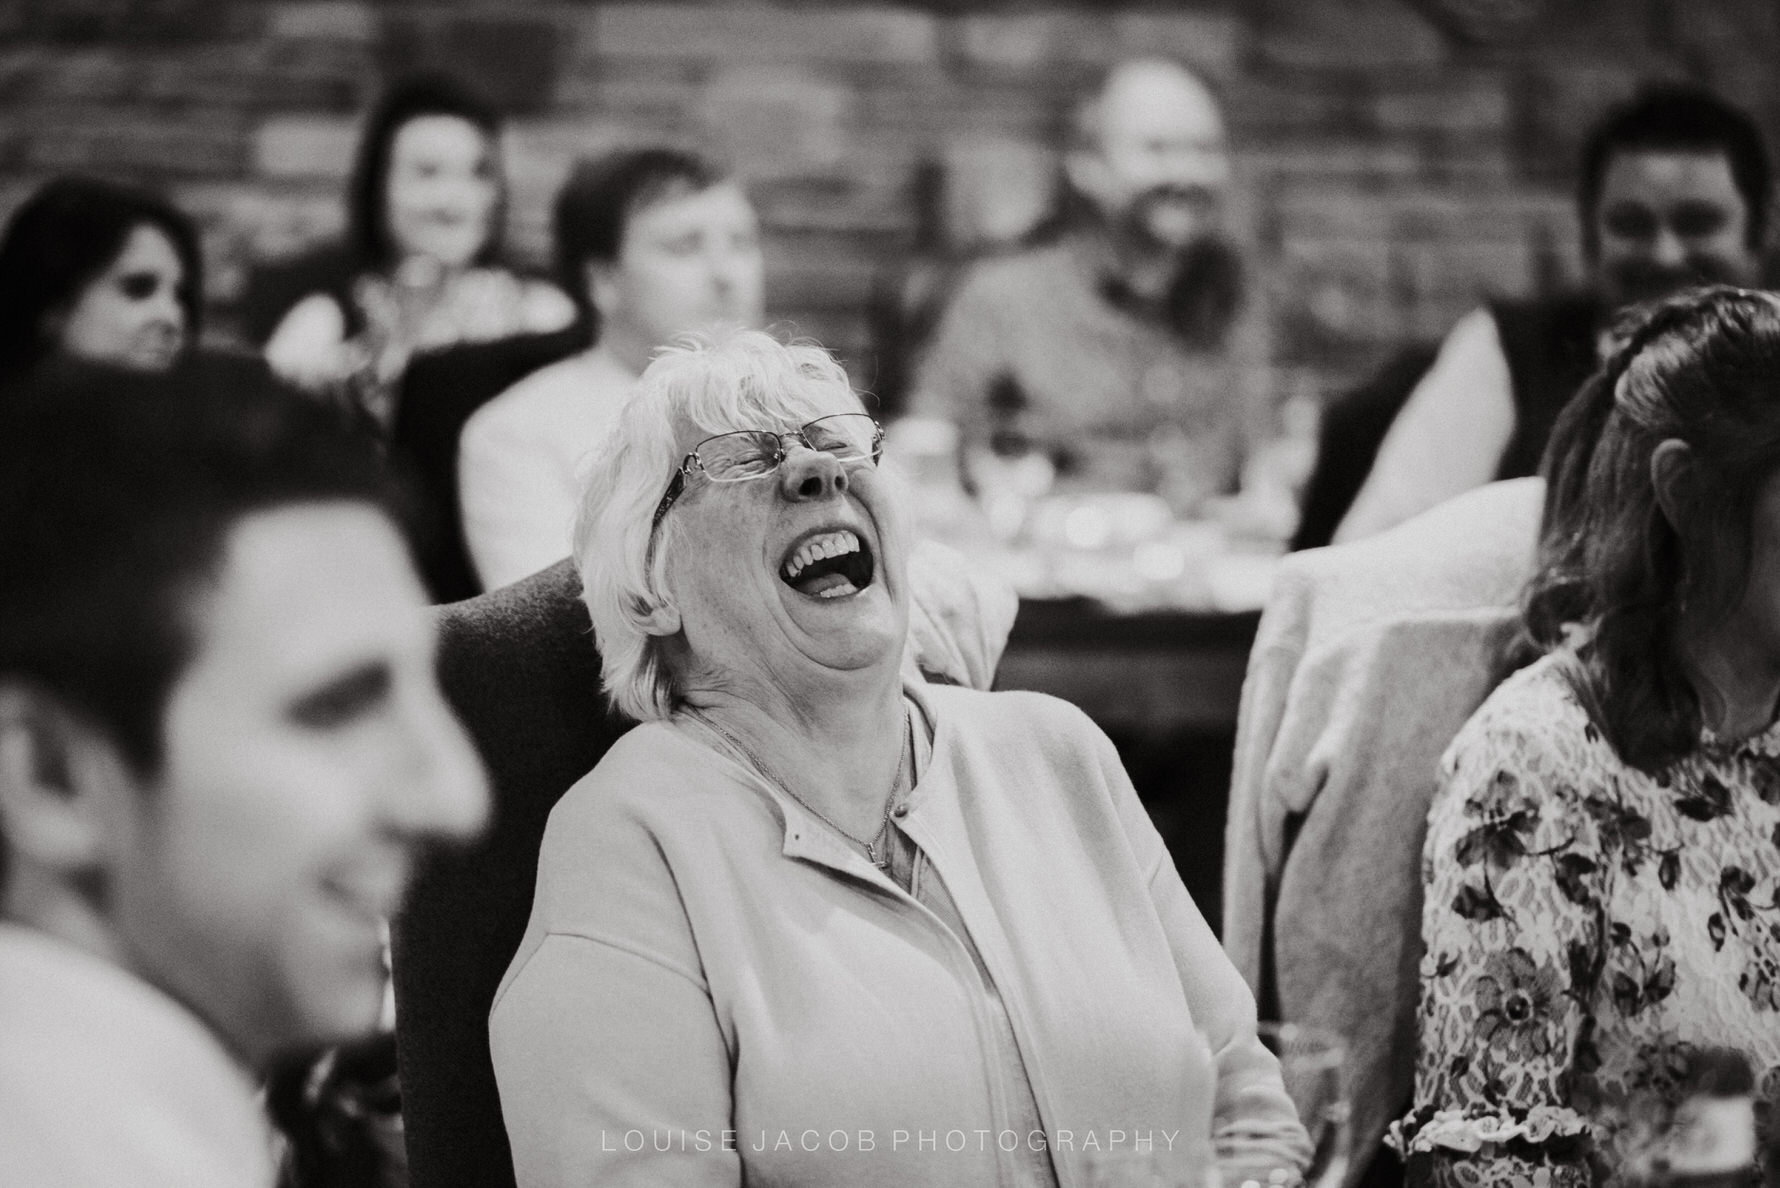 Candid Unposed Cheshire Documentary Wedding PhotographyCheshire Unposed Documentary Wedding Photography at The Red Lion and Manor, Burnsall